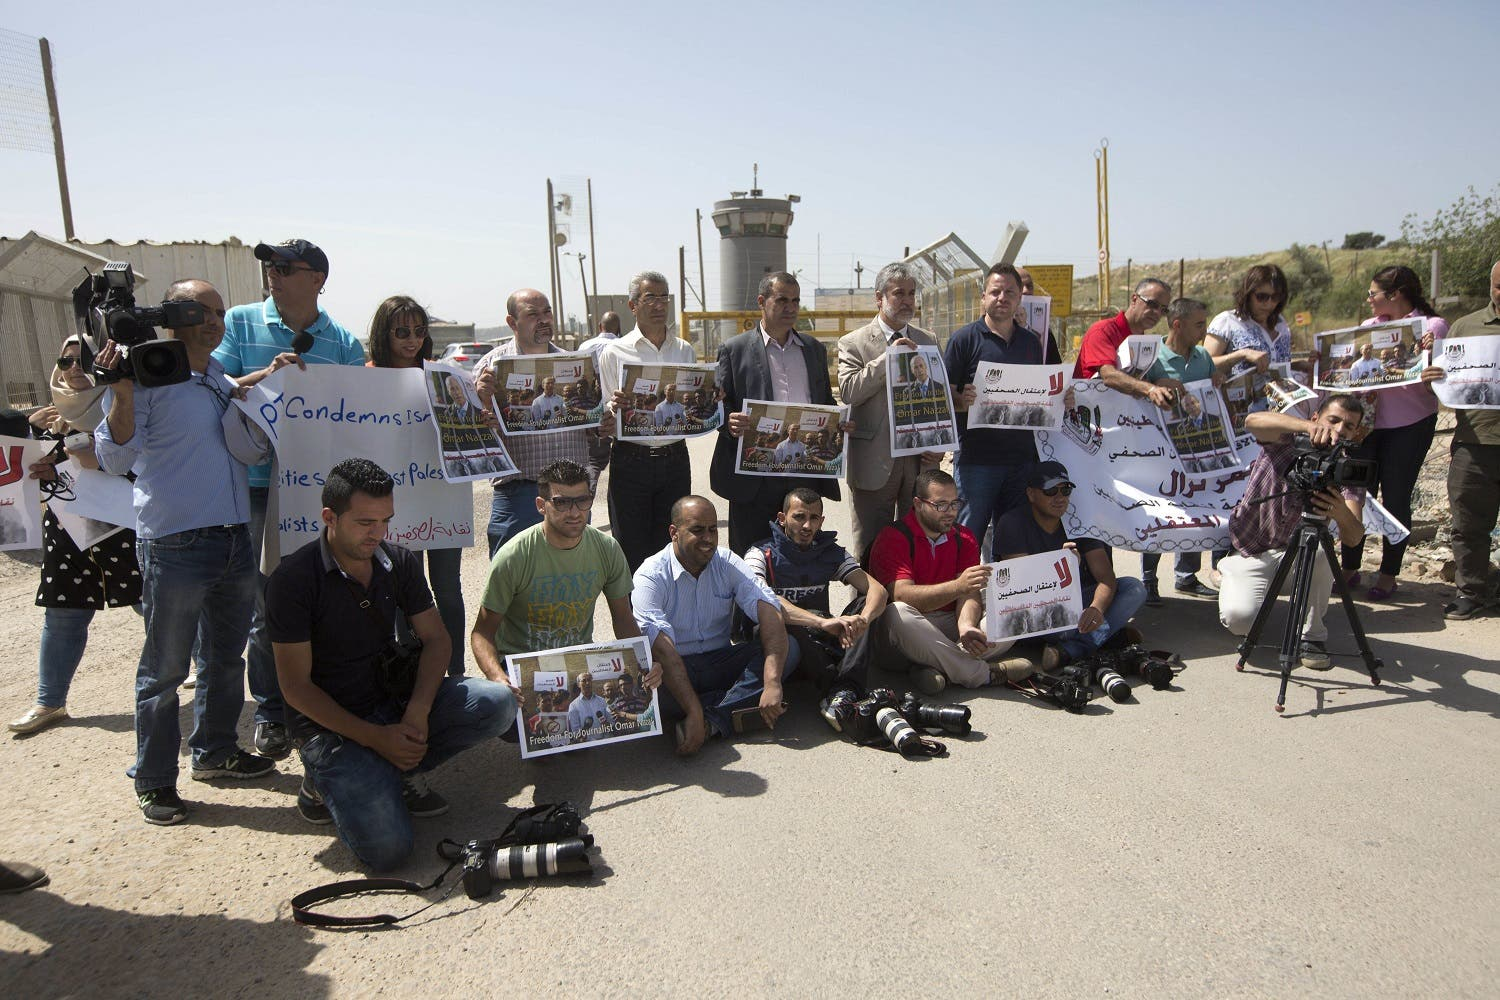 Palestinian journalists hold banners during a protest calling for the release of Palestinian journalist Omar Nazzal, who was arrested by Israeli authorities over the weekend, outside Ofer military prison near the West Bank city of Ramallah, Tuesday, April 26, 2016. (AP)